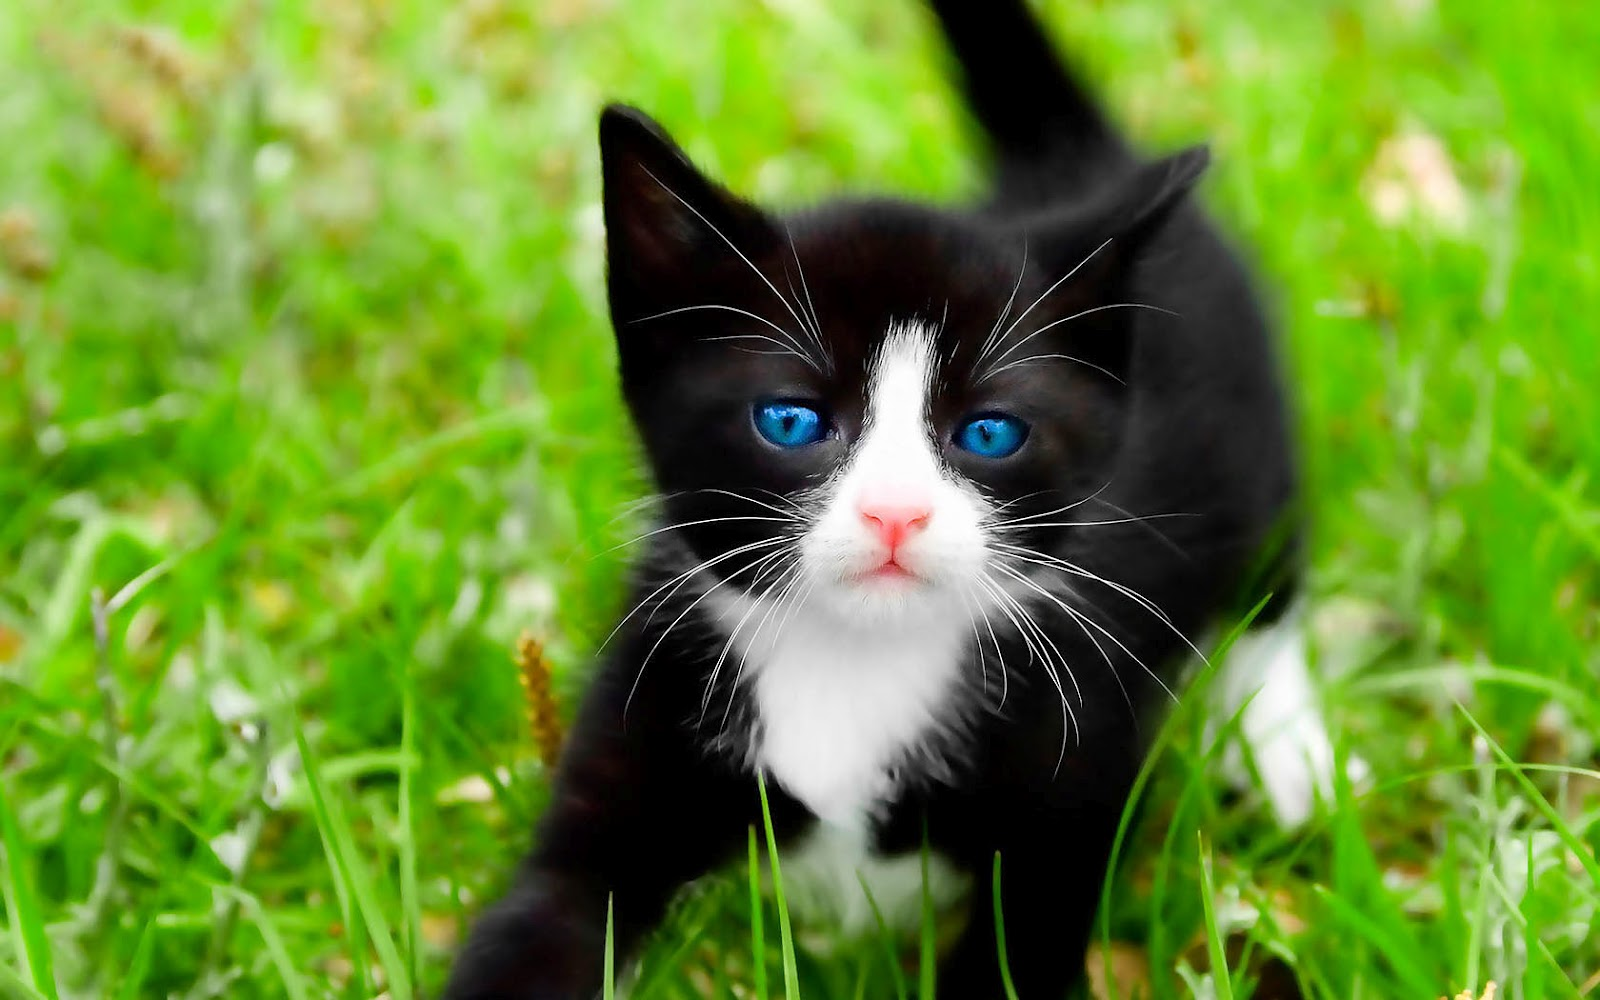 http://1.bp.blogspot.com/-sLHCraUF2MY/UDfxzyz2gAI/AAAAAAAABDM/88Teu9nrd54/s1600/hd-cat-wallpaper-with-a-black-cat-on-the-grass-hd-cats-wallpapers-backgrounds-pictures-photos.jpg